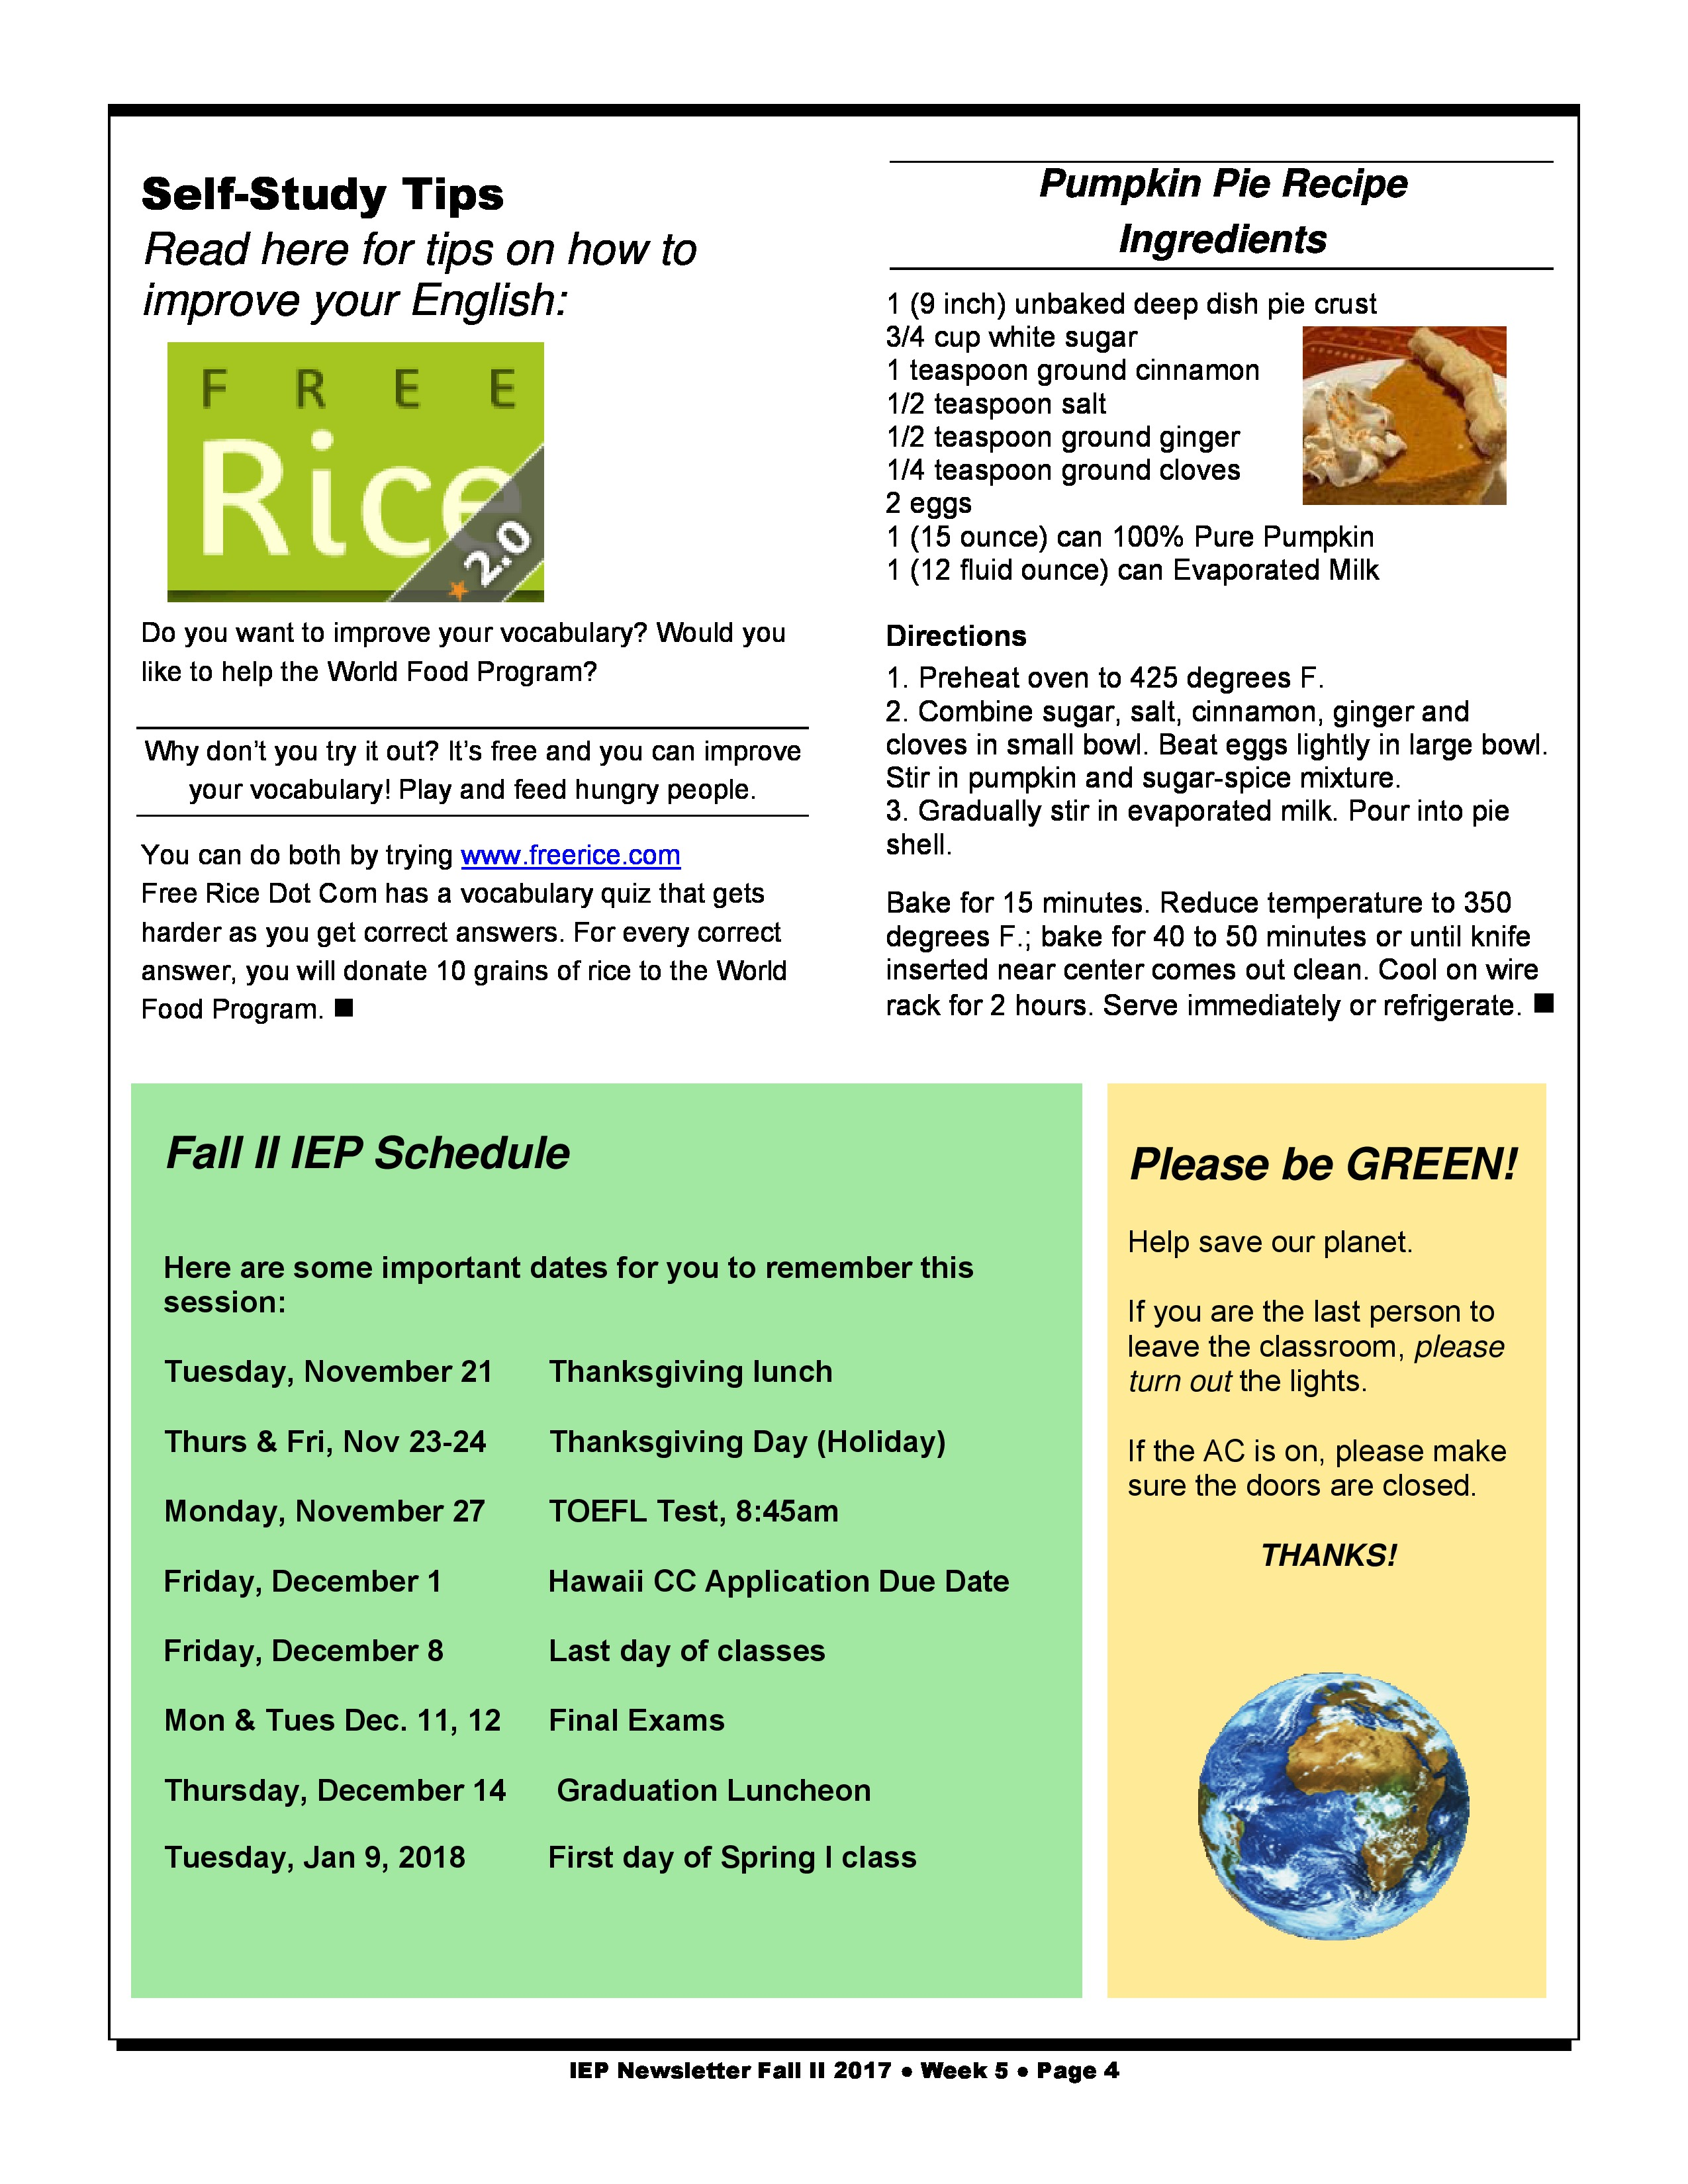 the importance of the schedule of the intensive english program iep classes